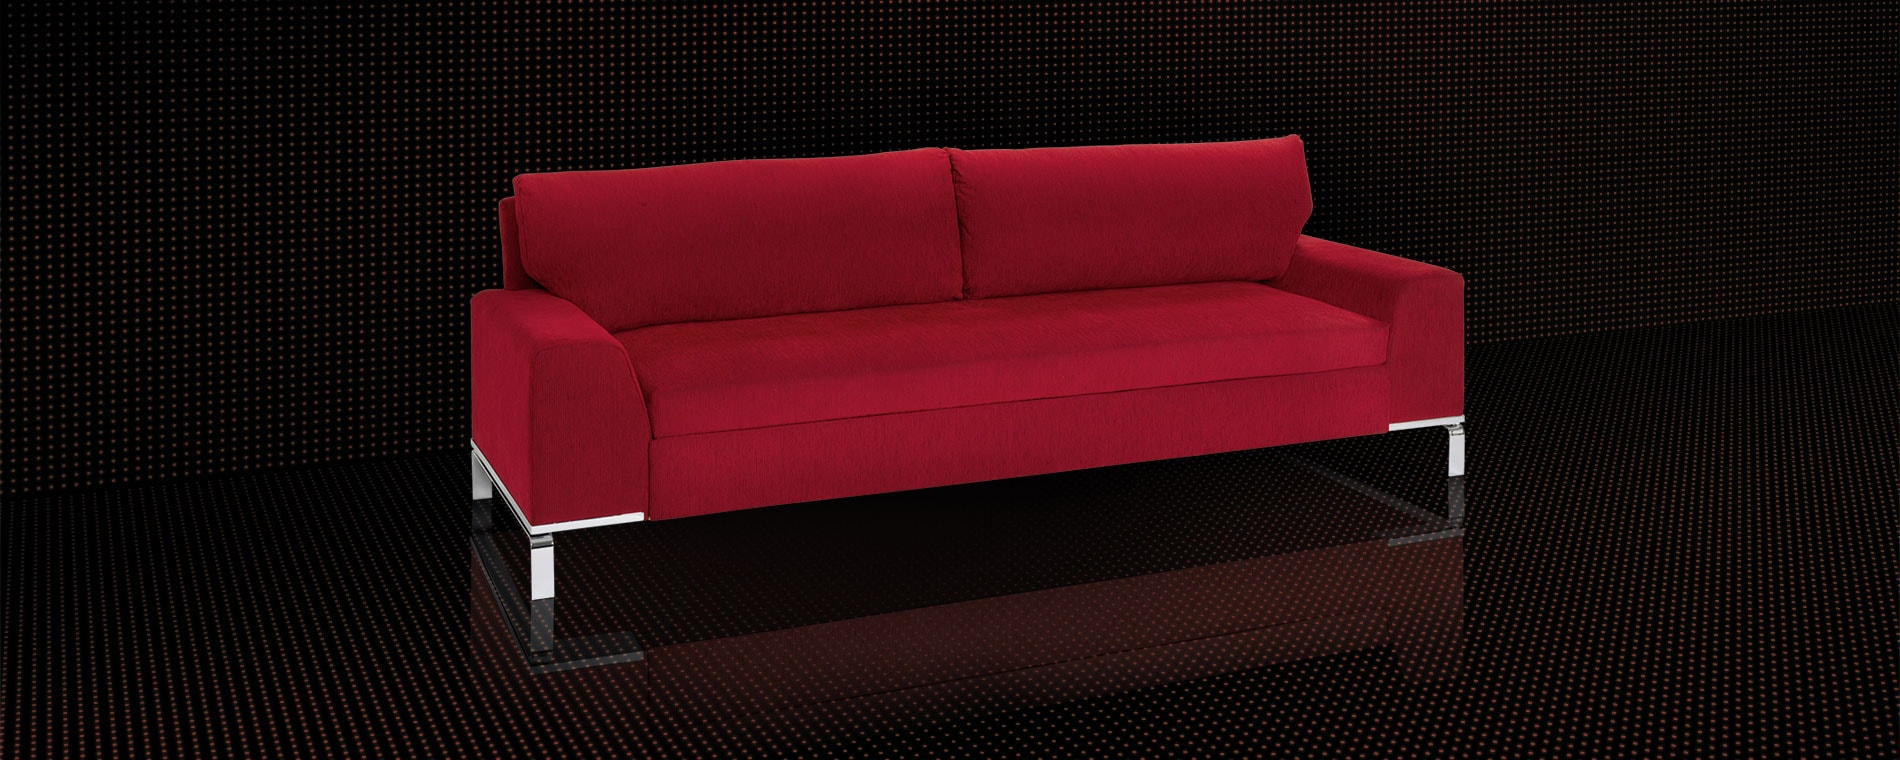 Das grosszügige Schlafsofa BED for LIVING Divan in rot.